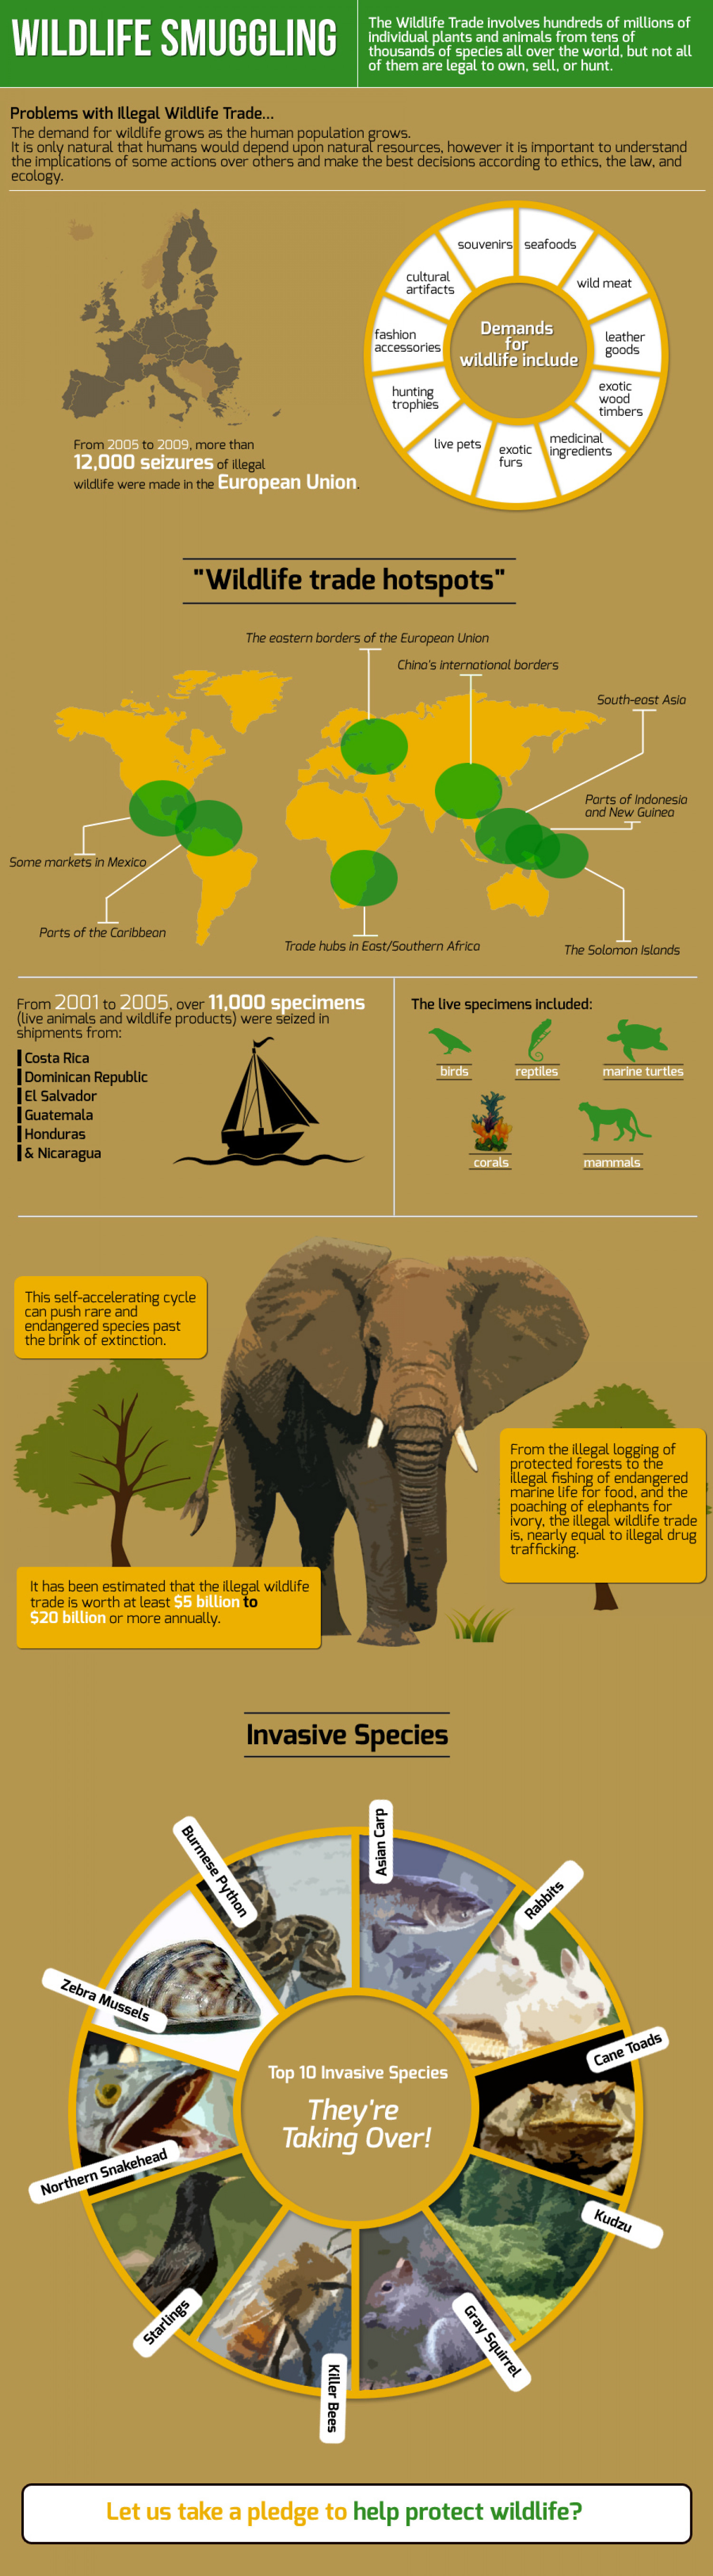 Wildlife smuggling Infographic